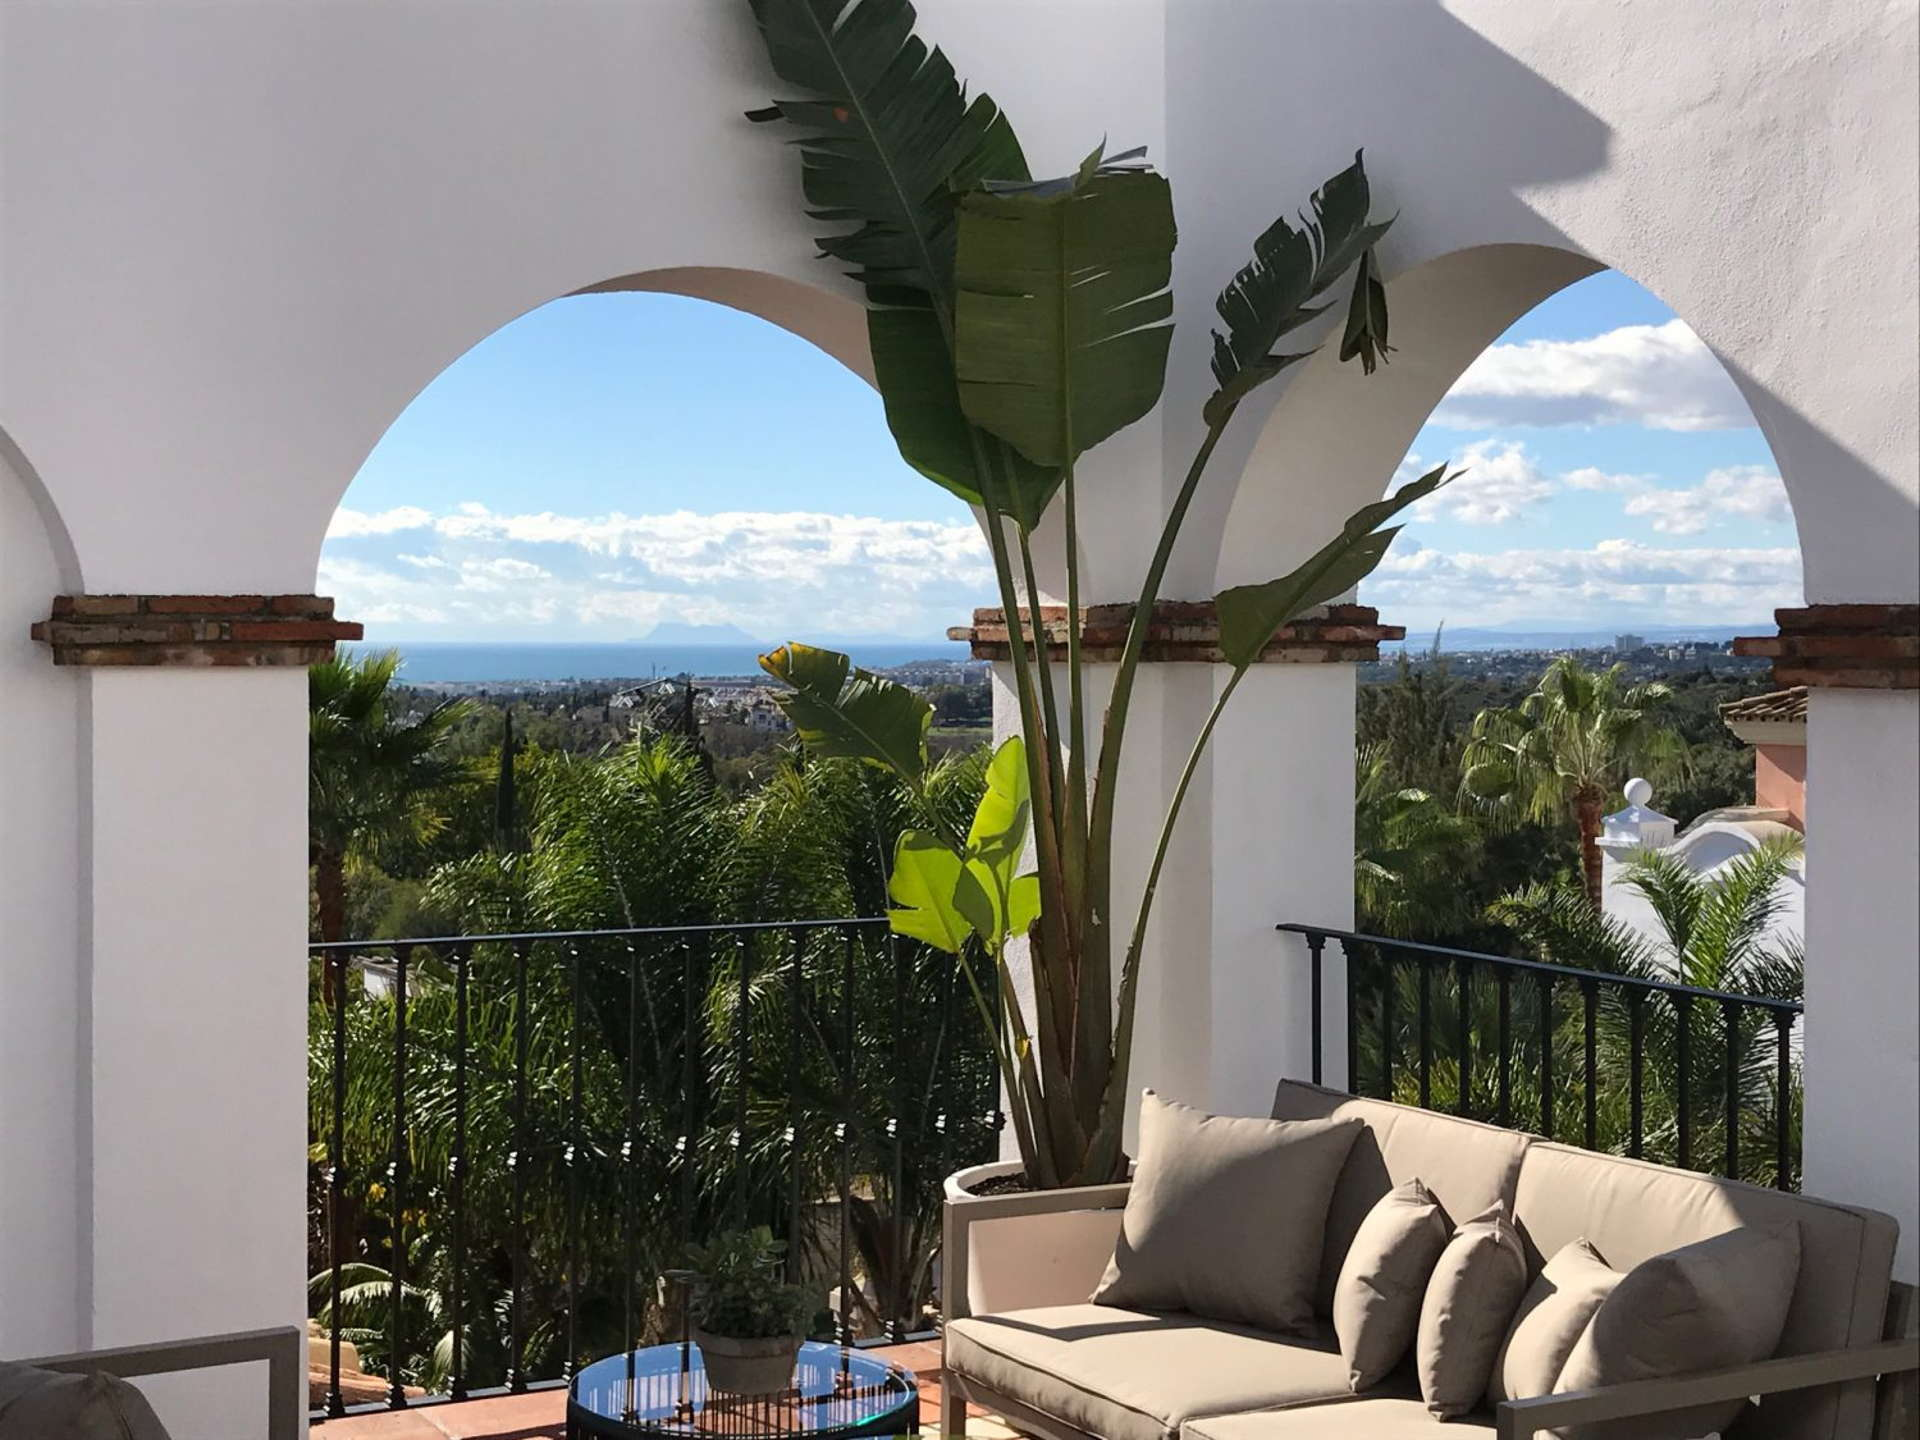 Columbus Hills contemporary 2 bedroom apartment with spectacular views in Sierra Blanca, Marbella.